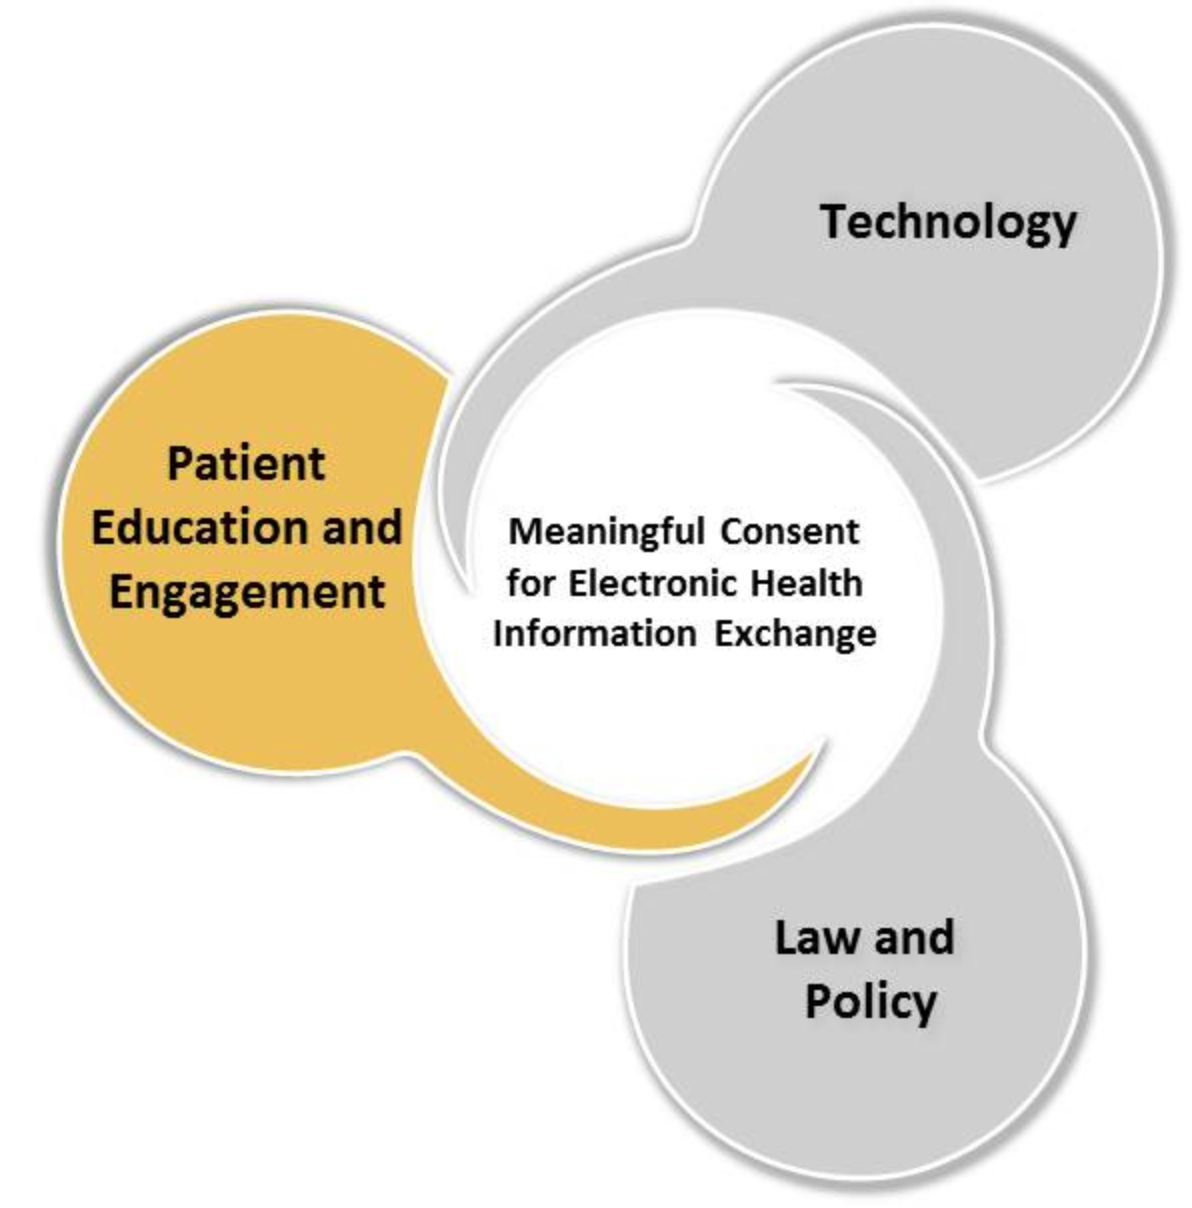 patient education and engagement